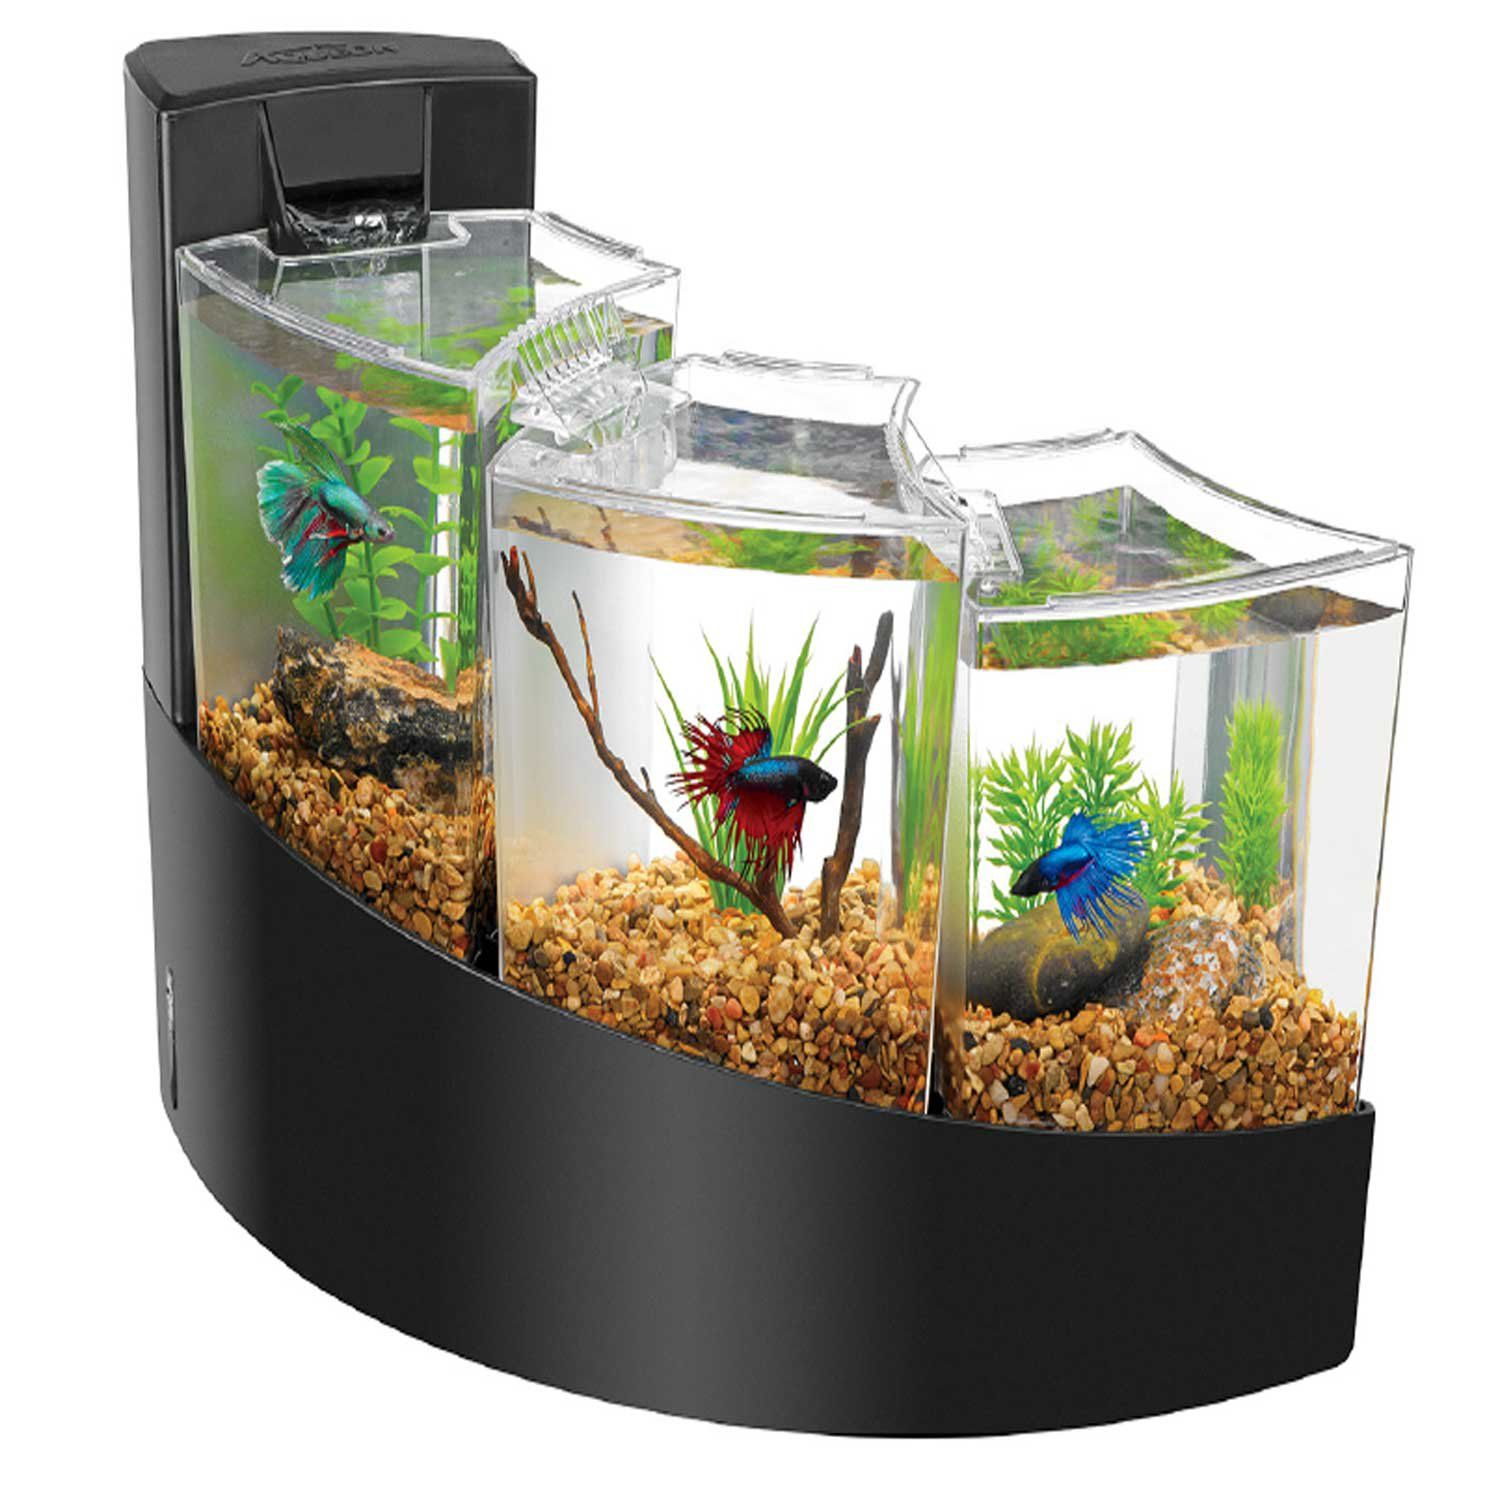 Aqueon betta falls aquarium kit in black aqueon betta for Betta fish tank with filter